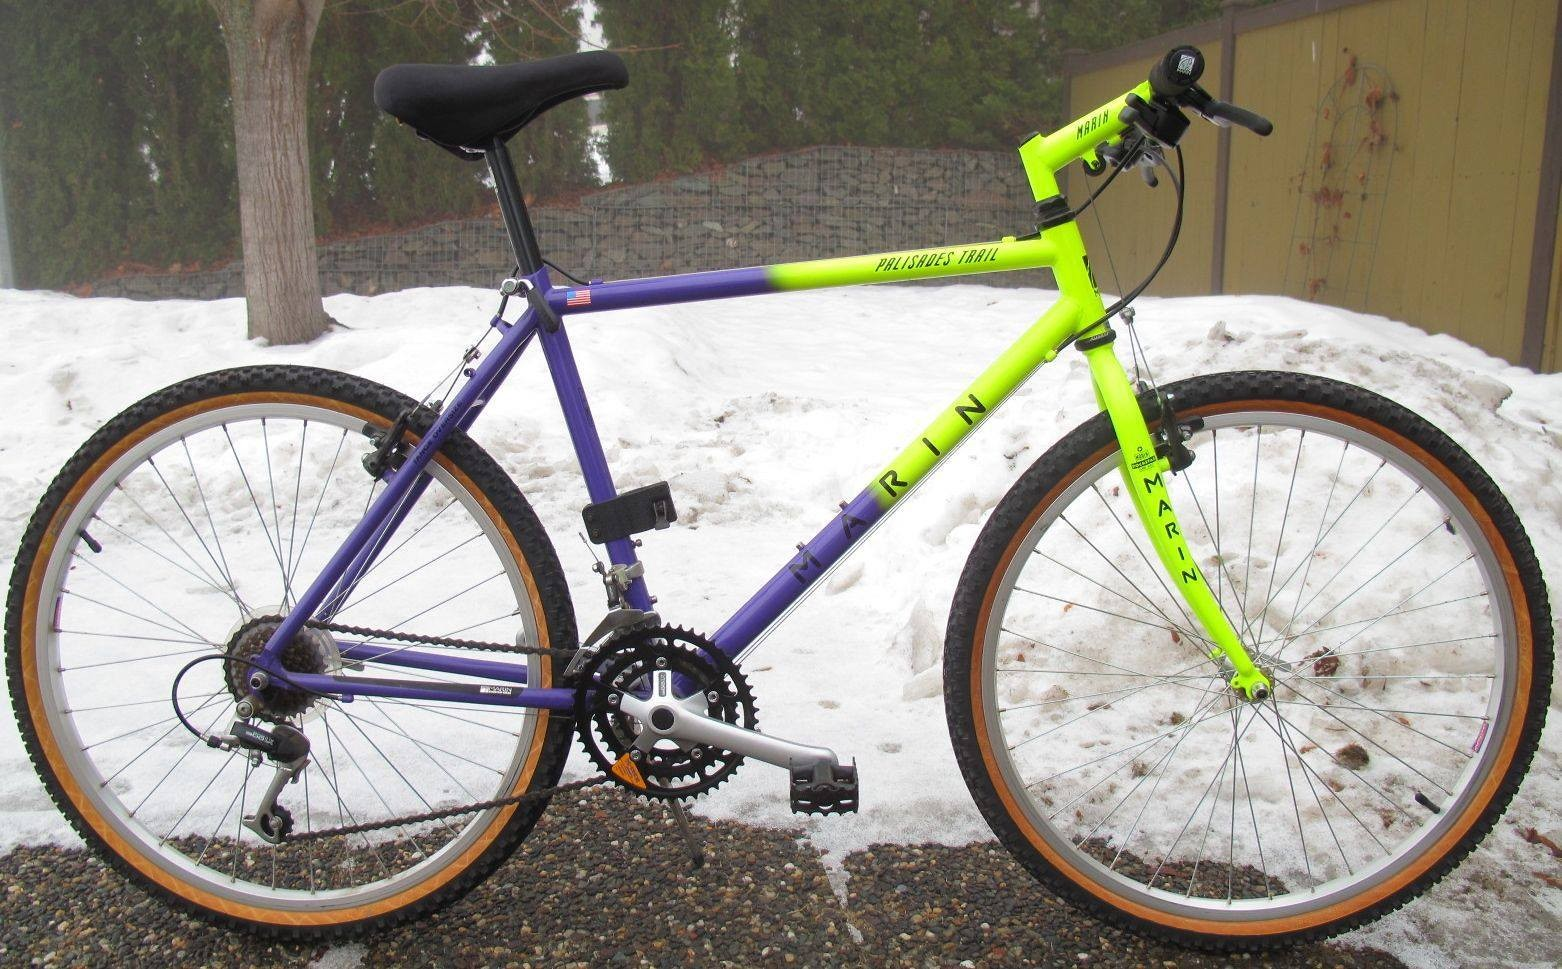 This bike is so hot it actually melted the snow underneath it. True story.